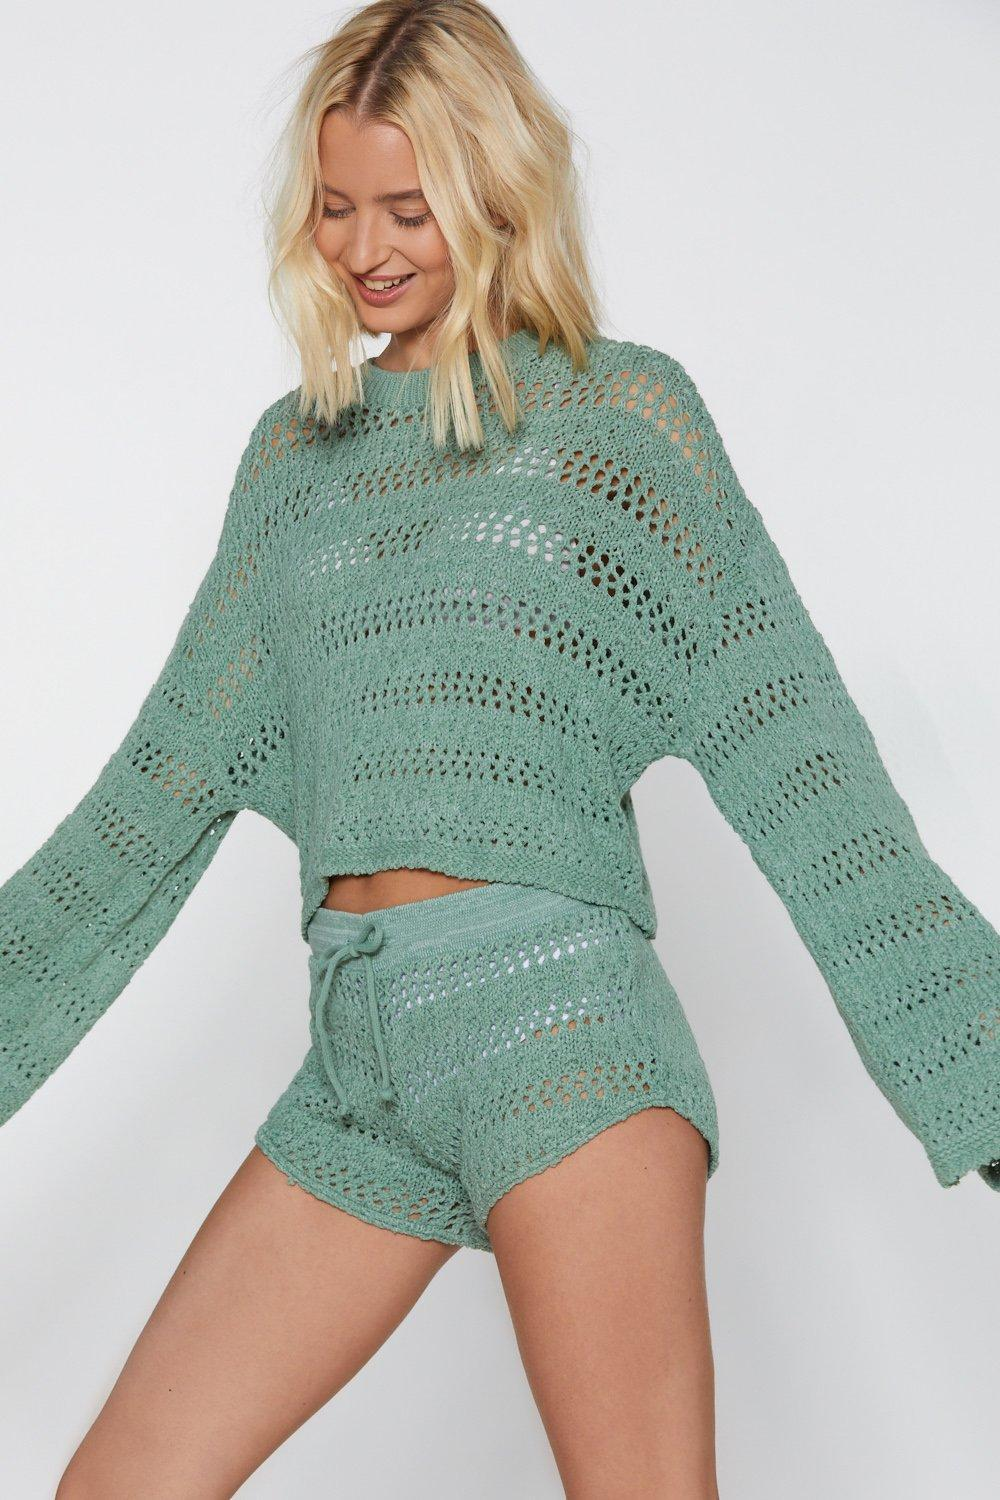 d5d1728b16 Lyst - Nasty Gal It s Crochet Hun Sweater And Shorts Set in Green